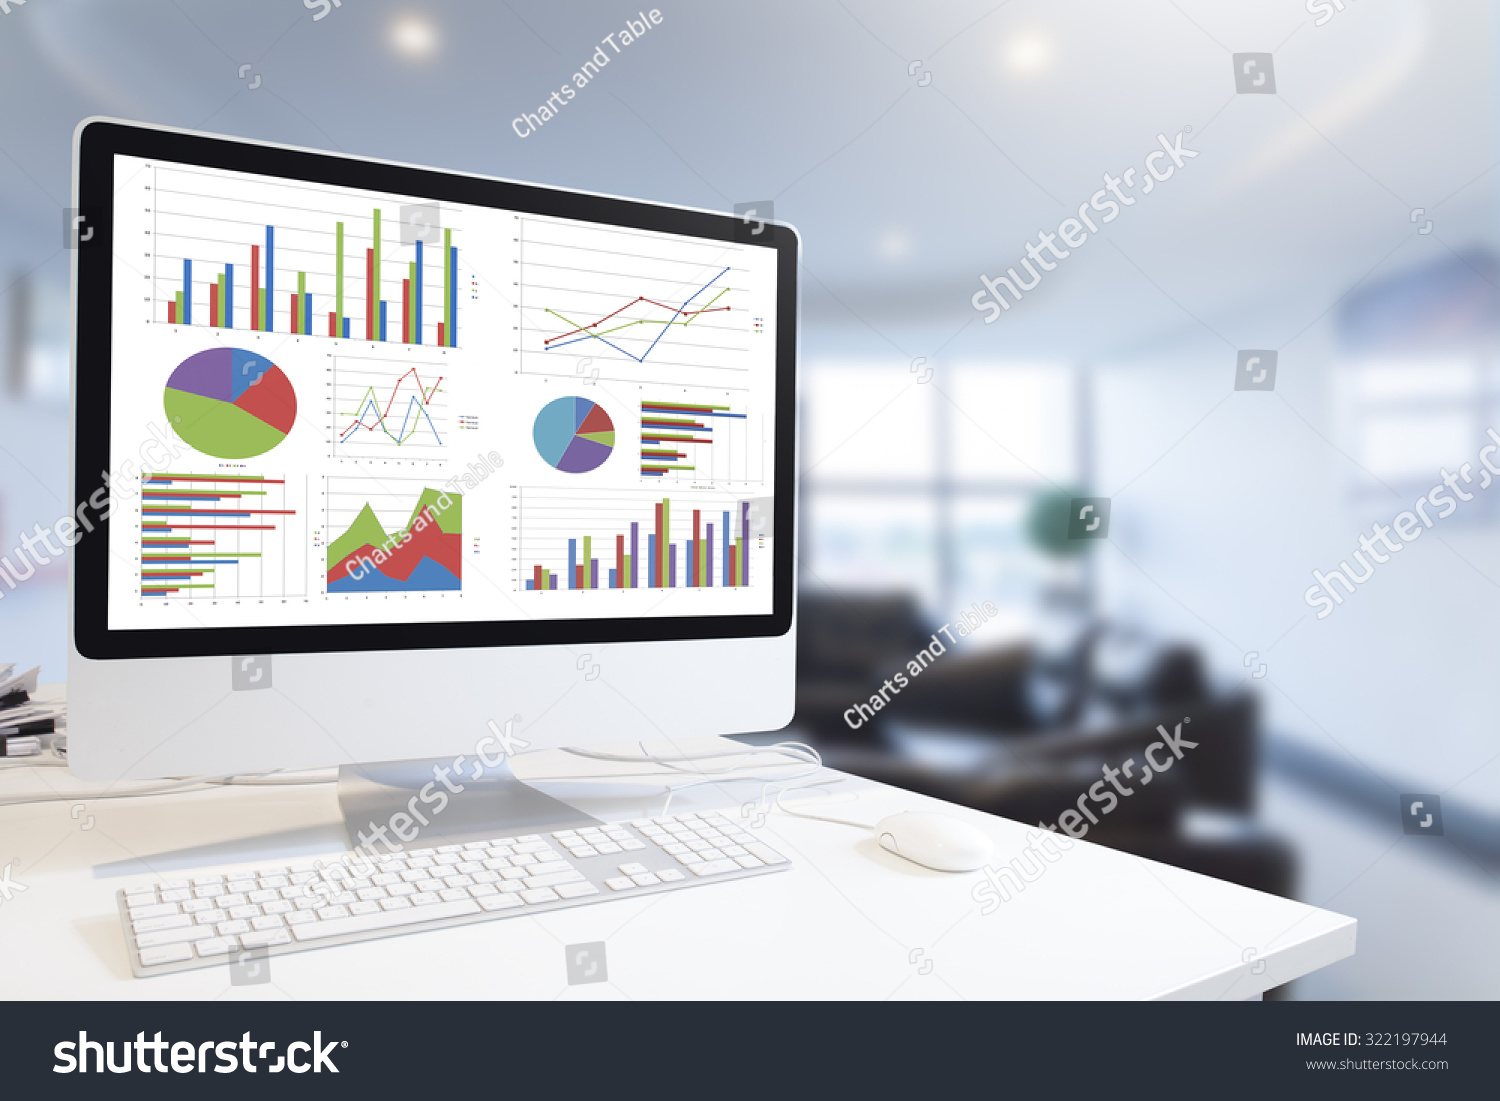 Operations Research and Computer Analysis